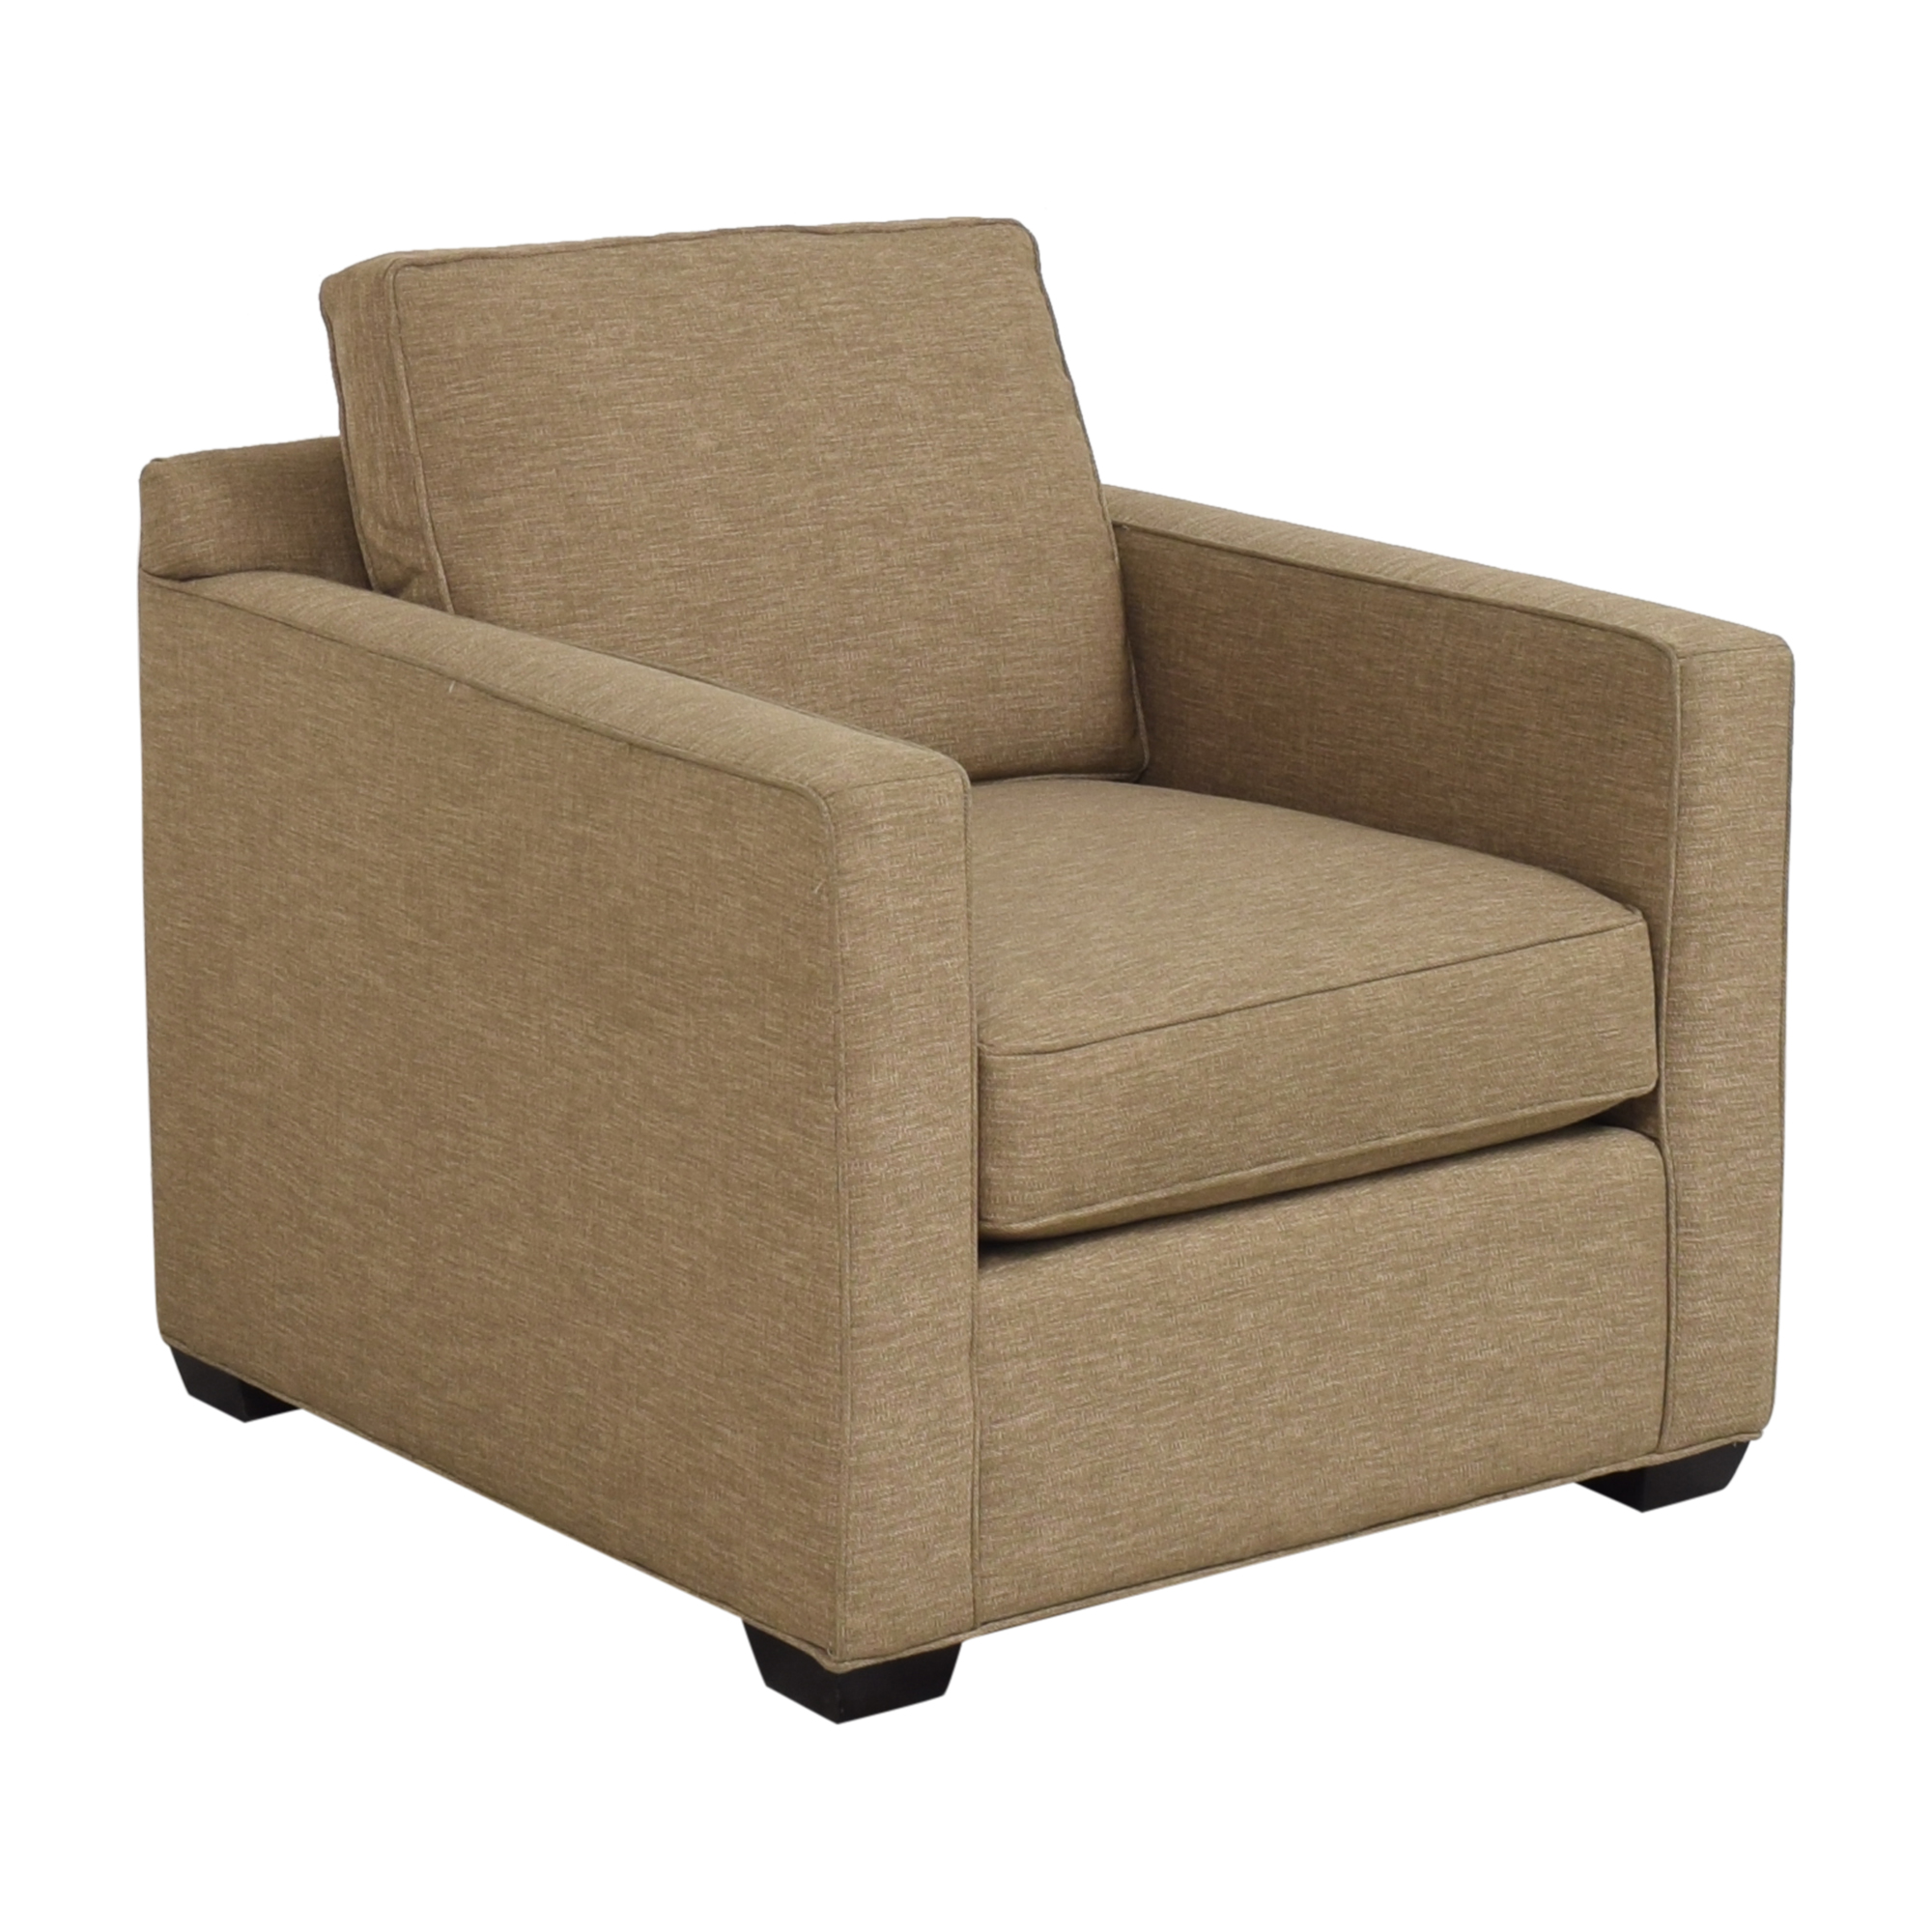 Crate & Barrel Barrett Track Arm Chair sale